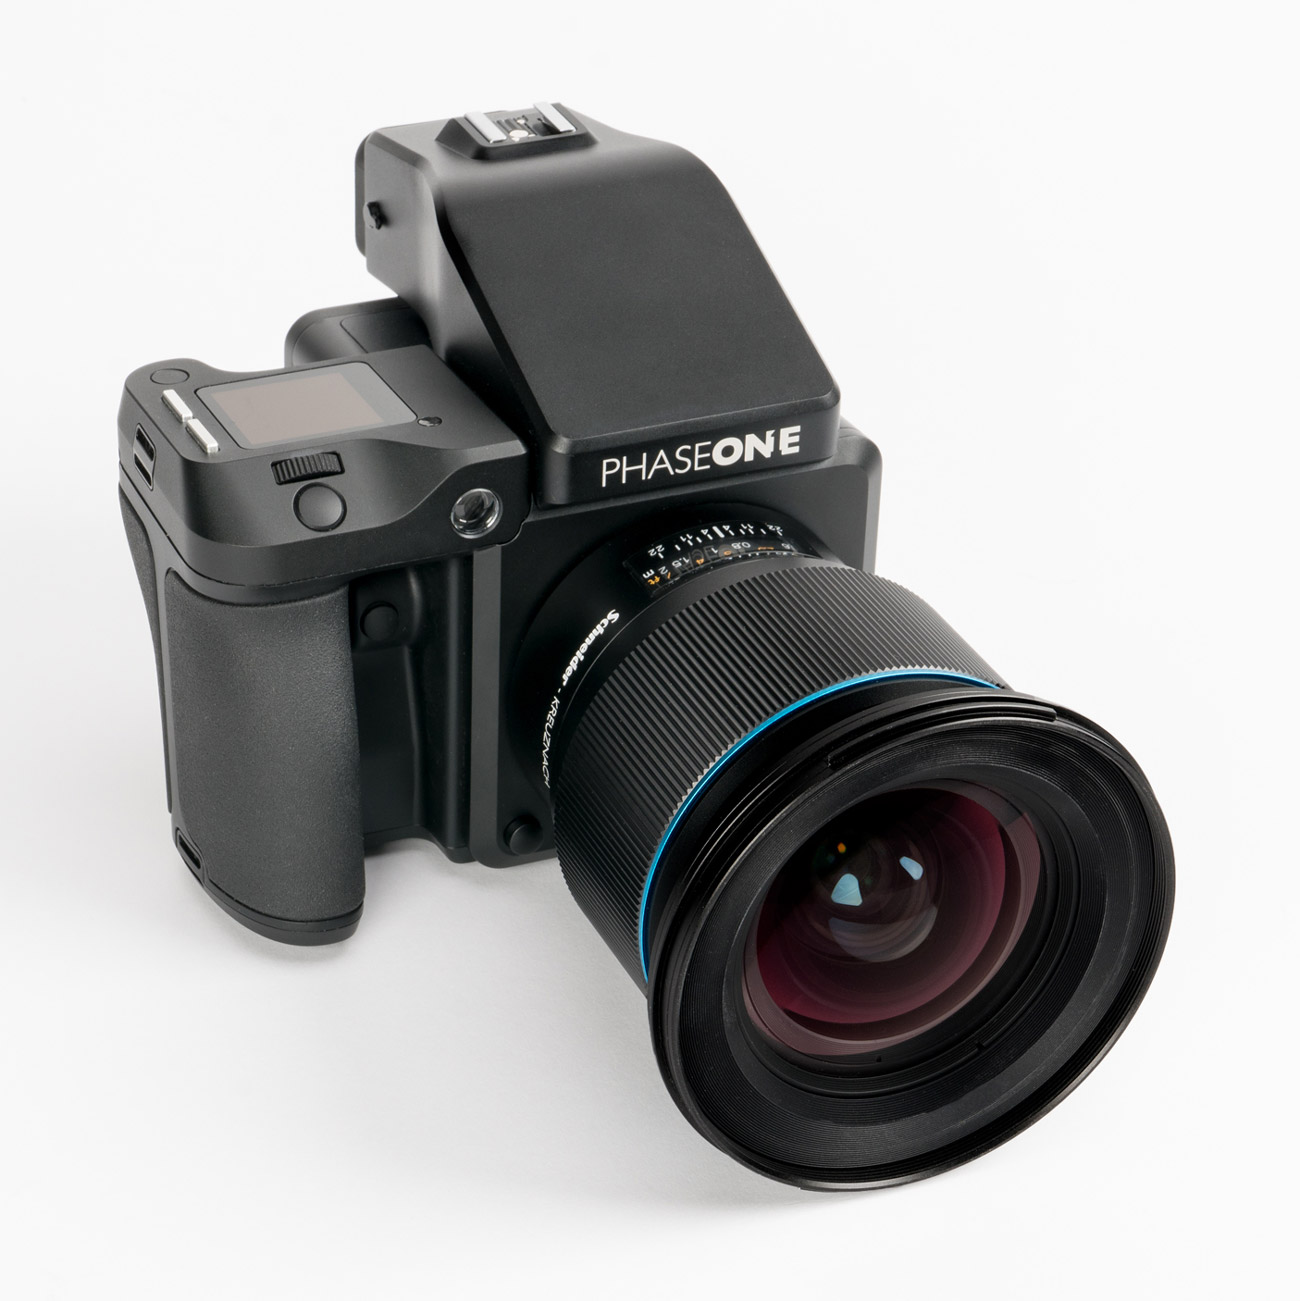 Black professional camera with a large lens and Phase One label.